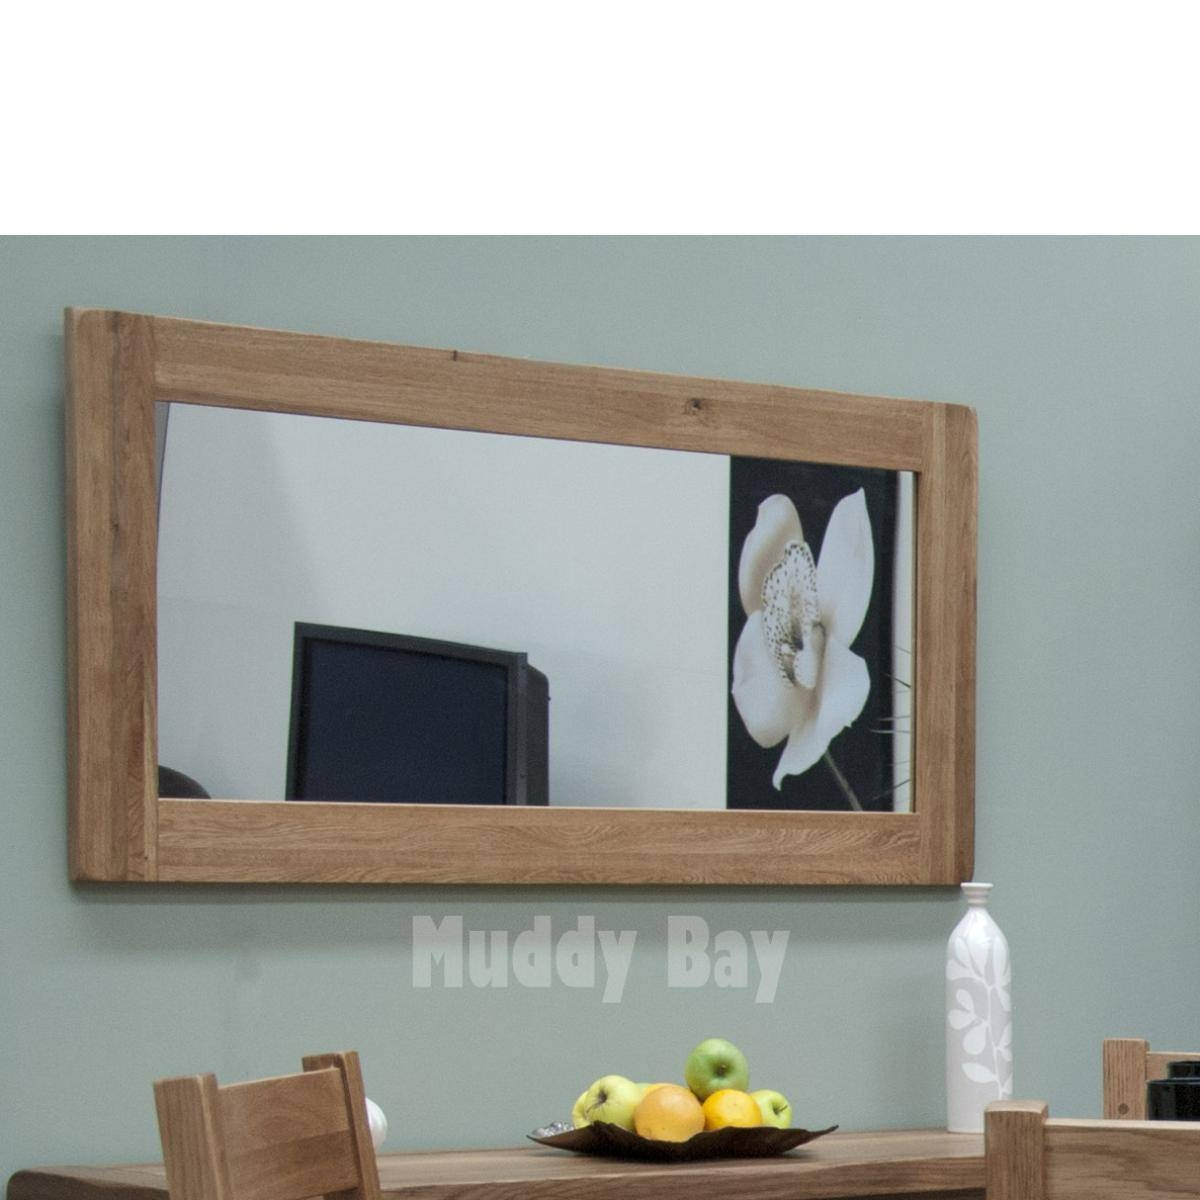 Muddy Bay :: Product Ranges :: Rustic Oak :: Rustic Oak Mirror pertaining to Rustic Oak Mirrors (Image 9 of 25)